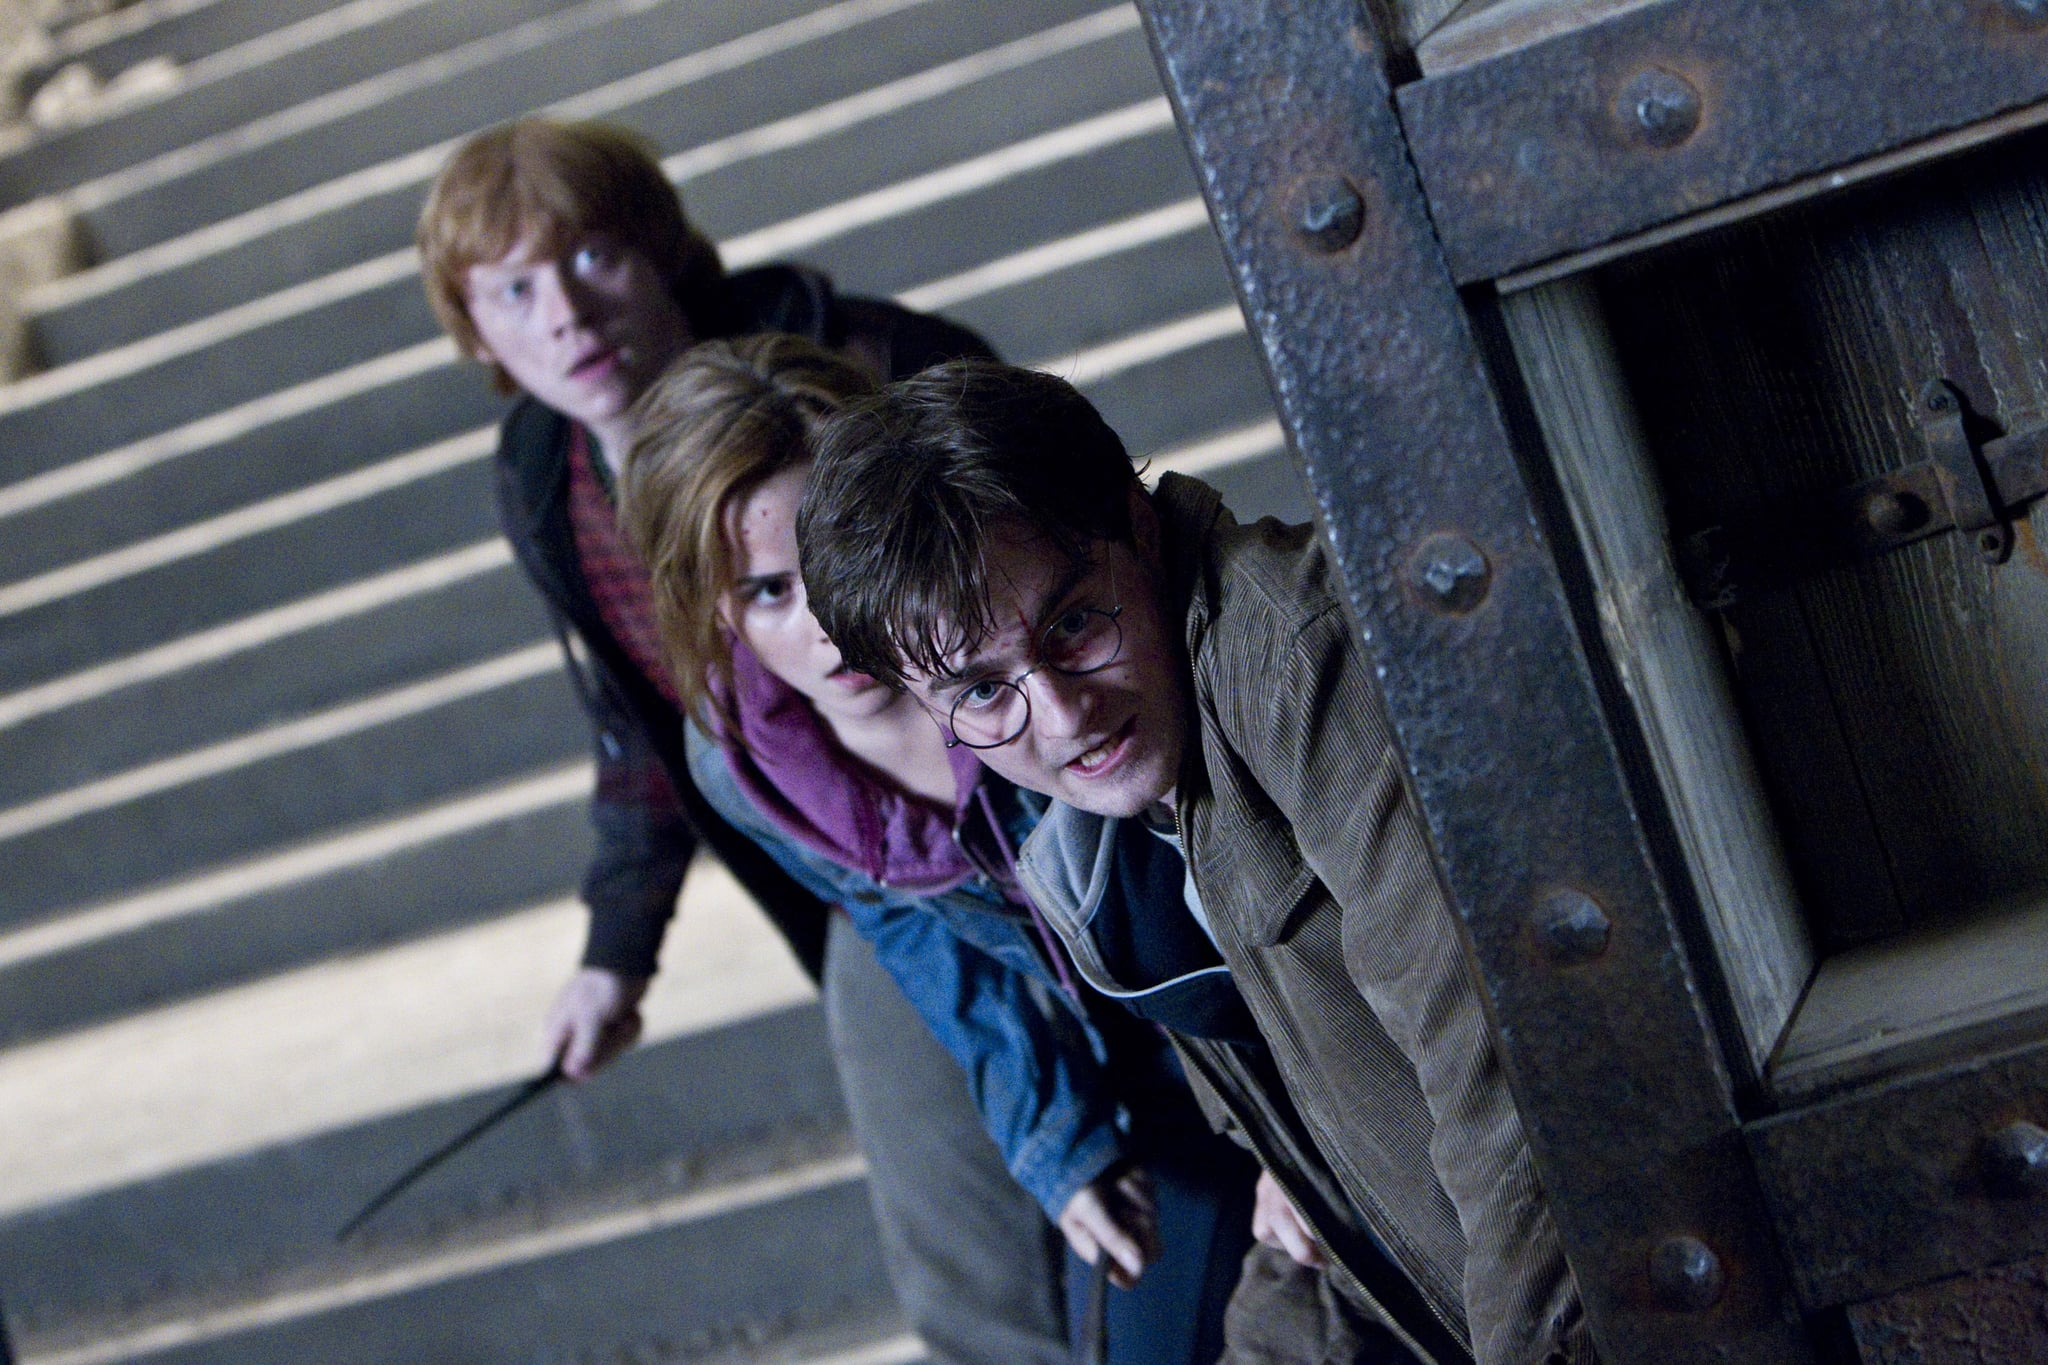 HARRY POTTER AND THE DEATHLY HALLOWS: PART 2, from left: Rupert Grint, Emma Watson, Daniel Radcliffe, 2011. ph: Jaap Buitendijk/2011 Warner Bros. Ent. Harry Potter publishing rights J.K.R. Harry Potter characters, names and related indicia are trademarks of and Warner Bros. Ent. All rights reserved./Courtesy Everett Collection